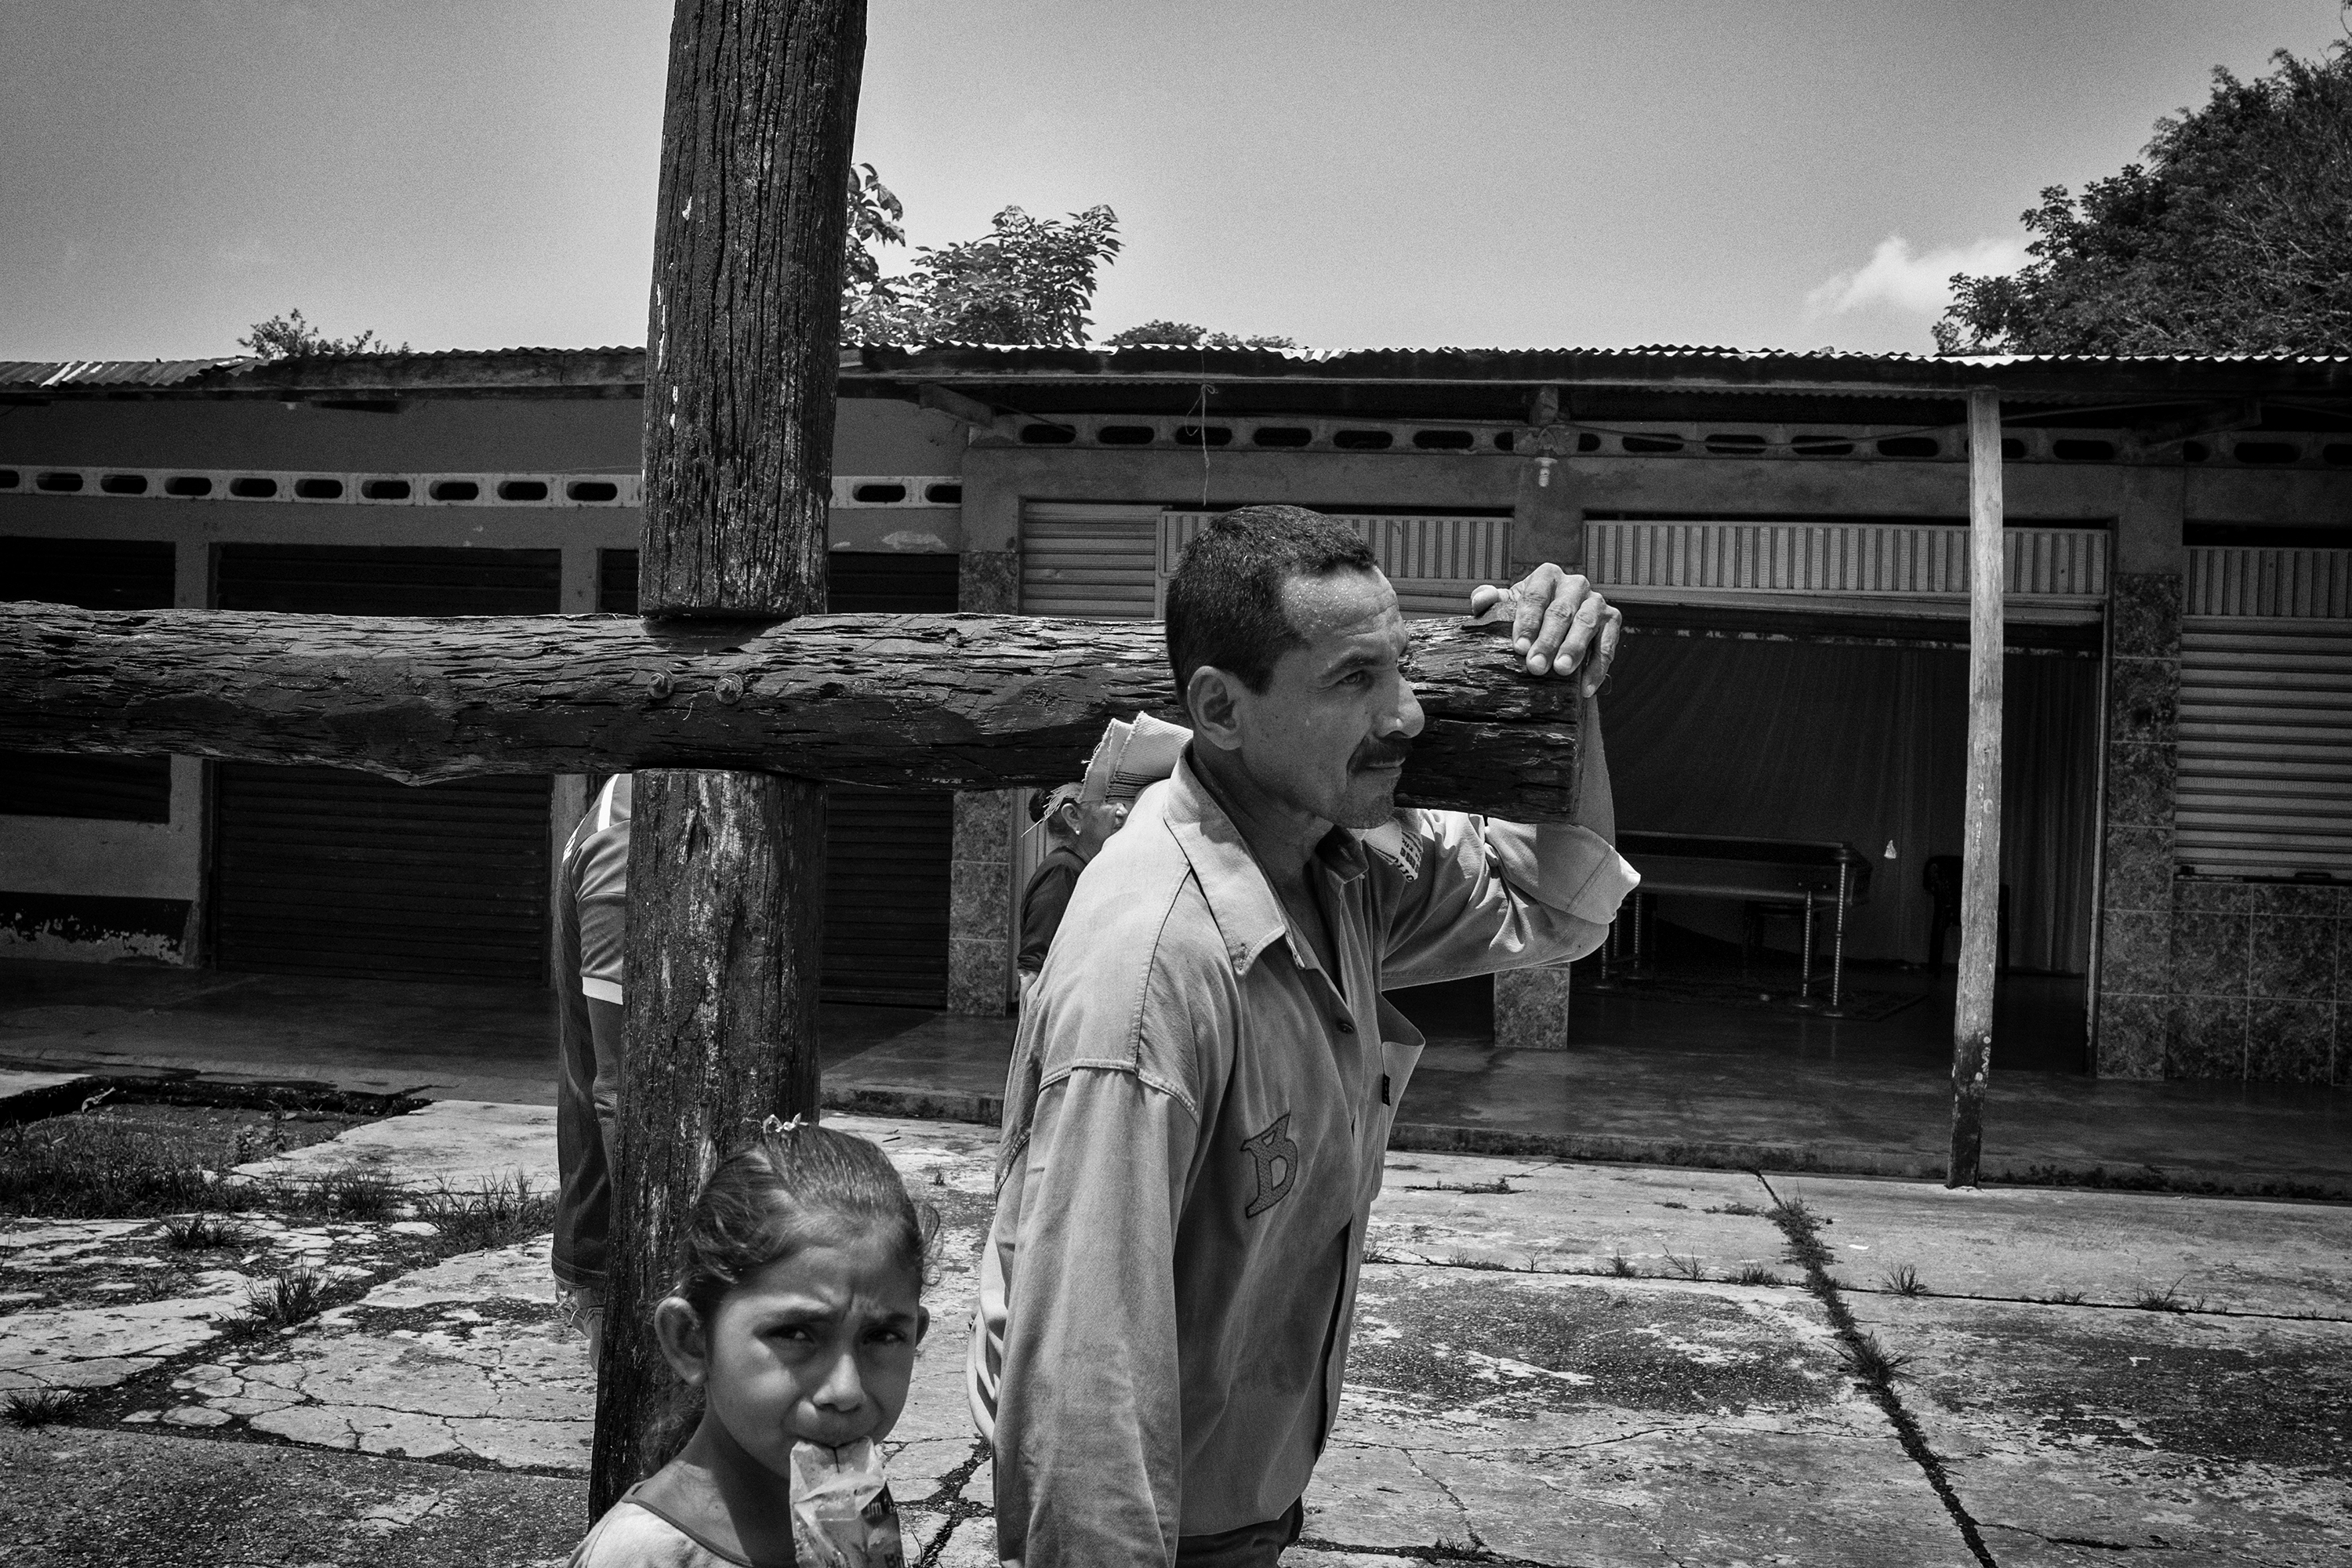 Civilians in the community of Remolinos del Caguan  during Easter celebrations, Caqueta, Colombia, April, 2016.